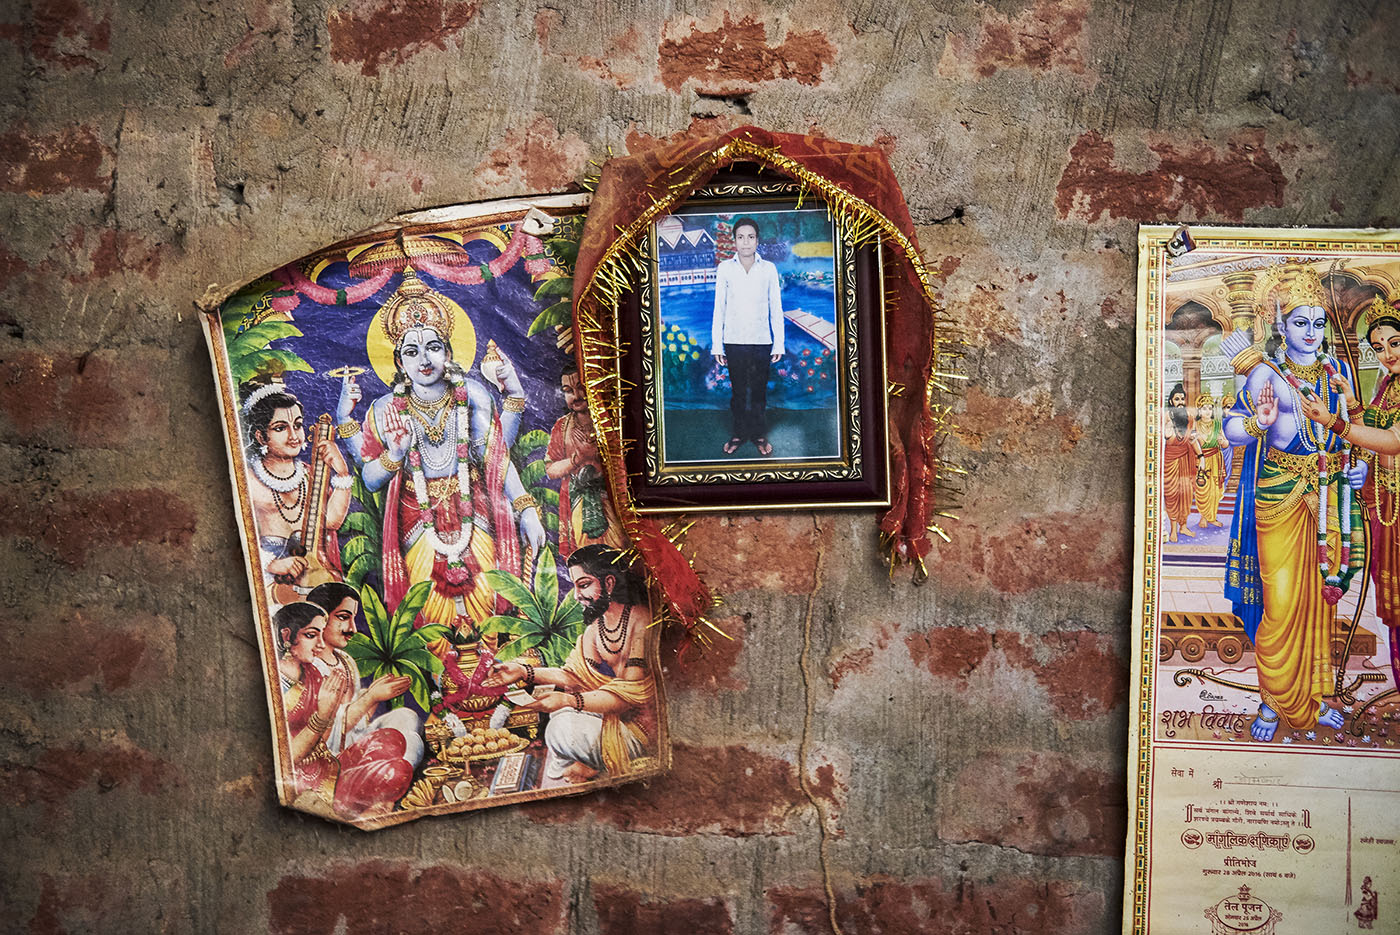 A photograph of Raju is hung along with posters of Hindu Gods. Raju's wife, Reena Devi, prays to them everyday.